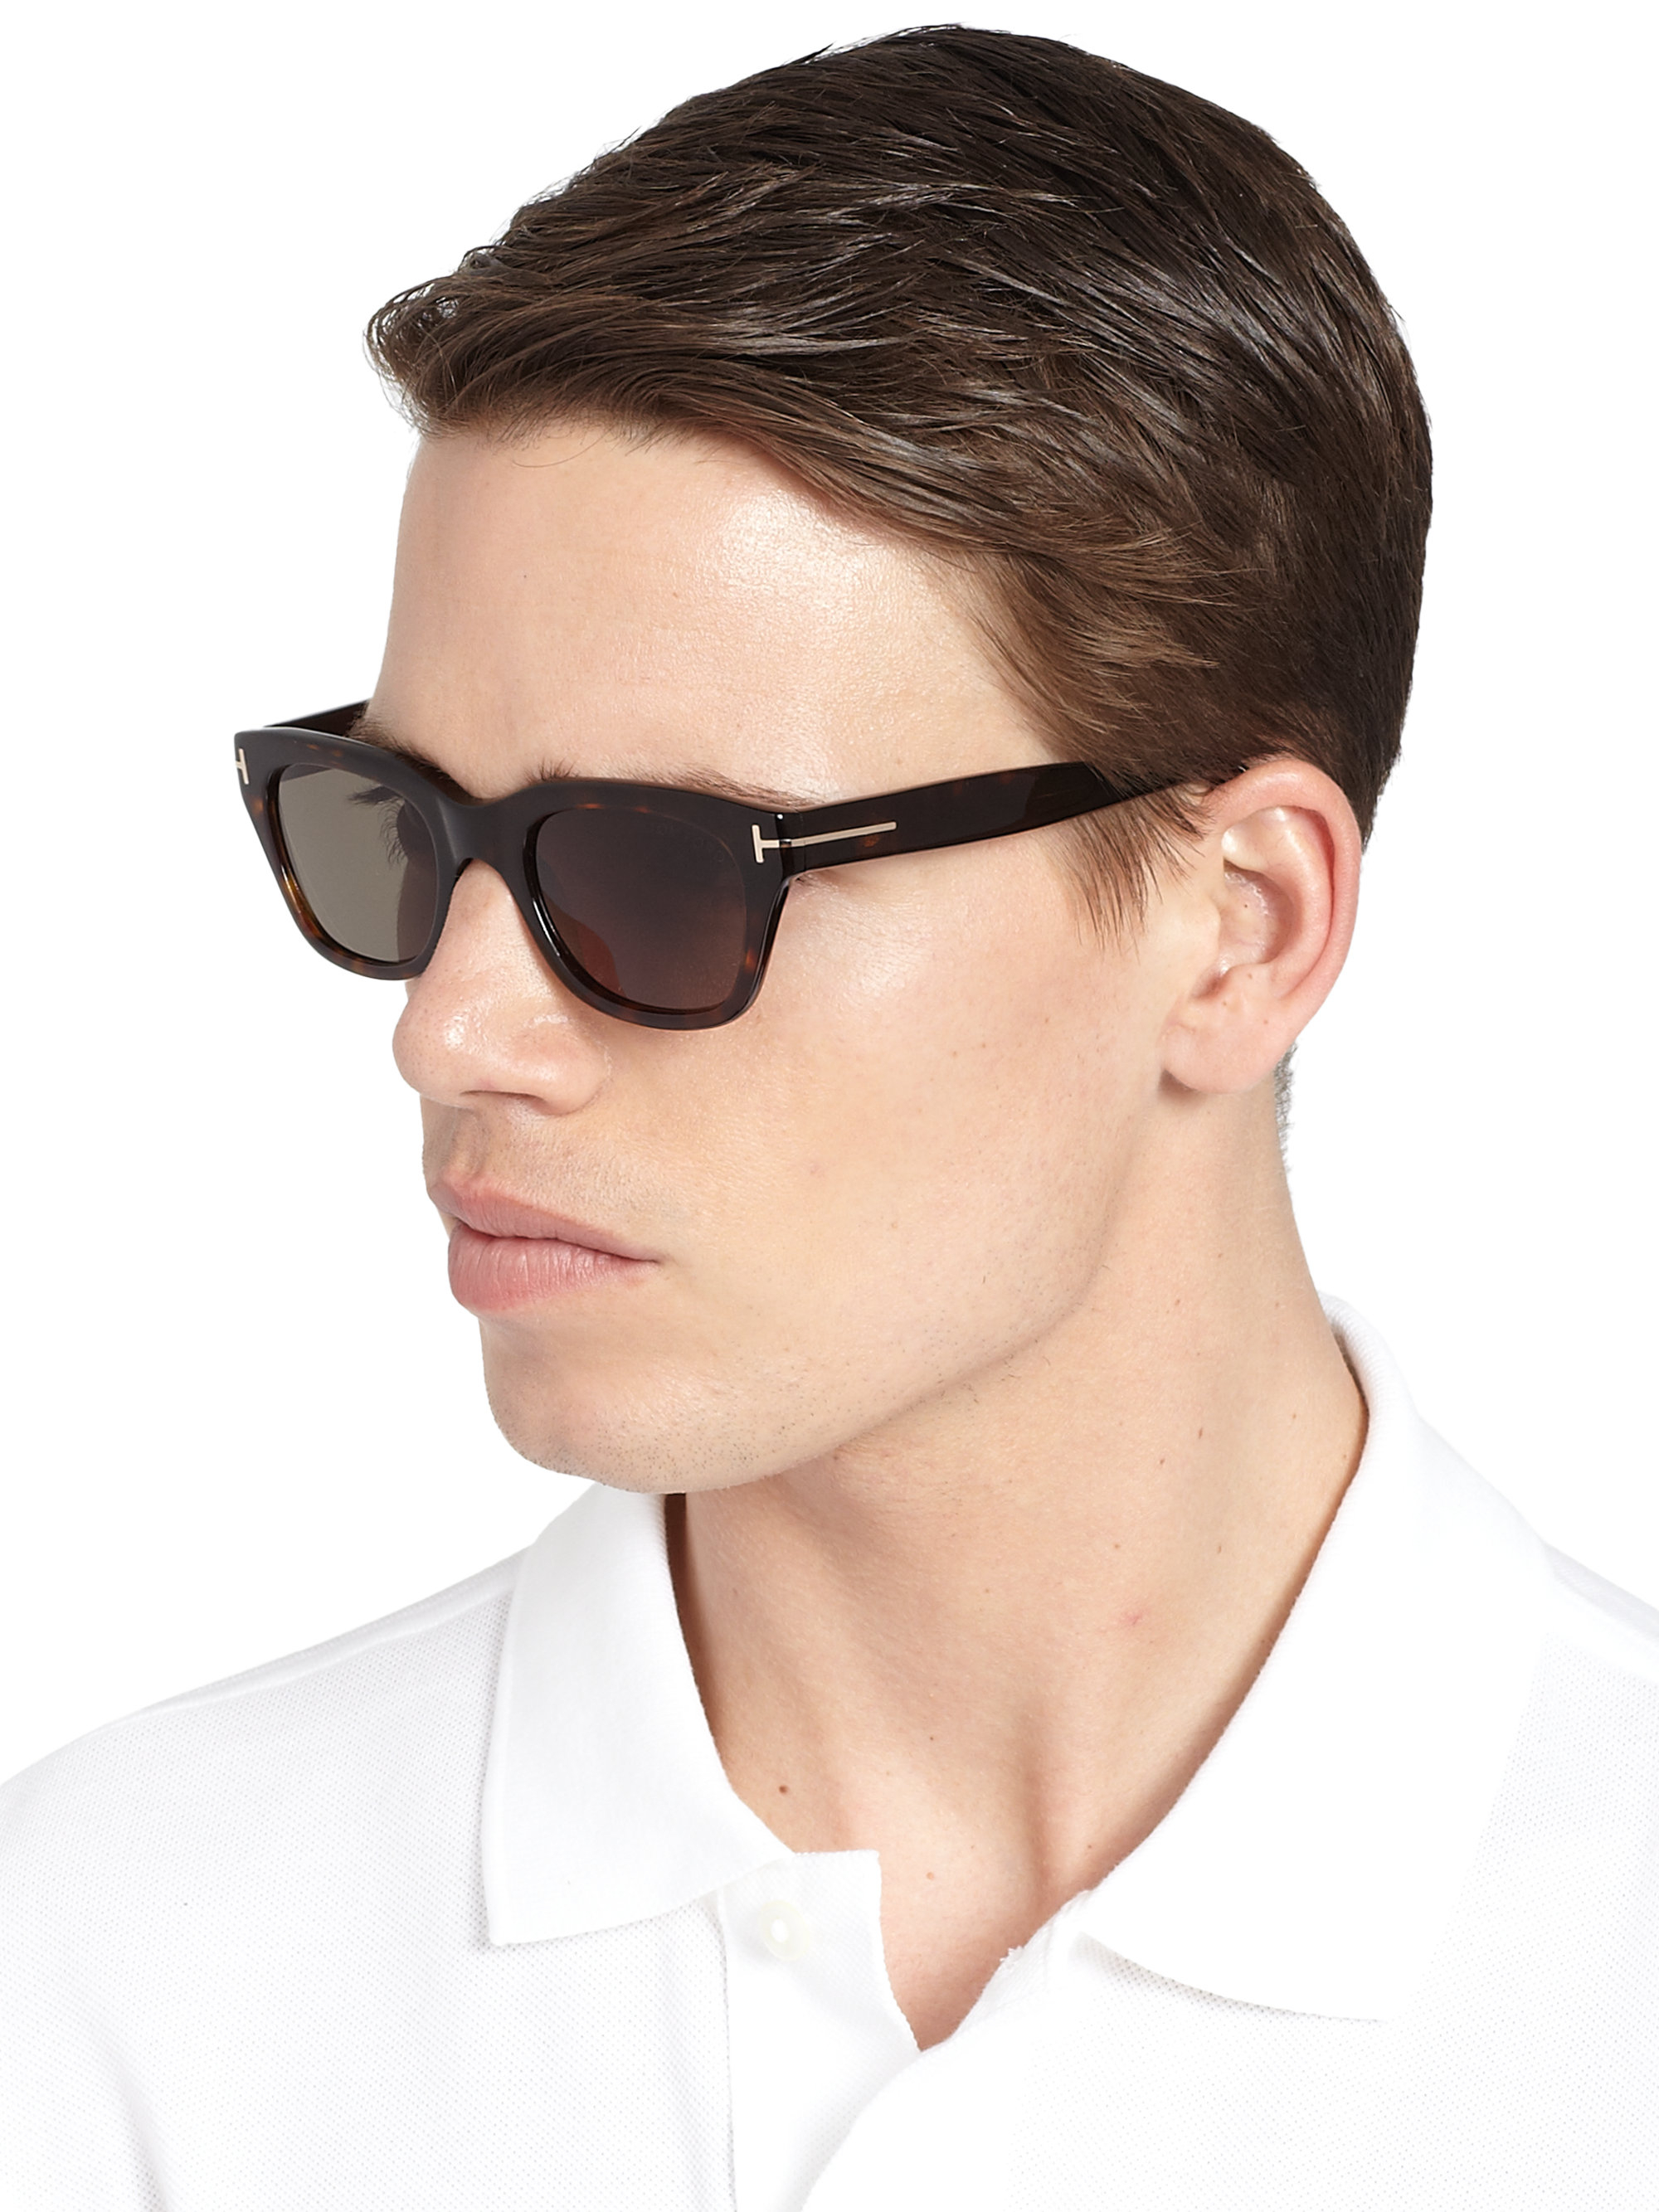 6d977b2ad19 Tom Ford Sunglasses Snowdon Brown - Bitterroot Public Library